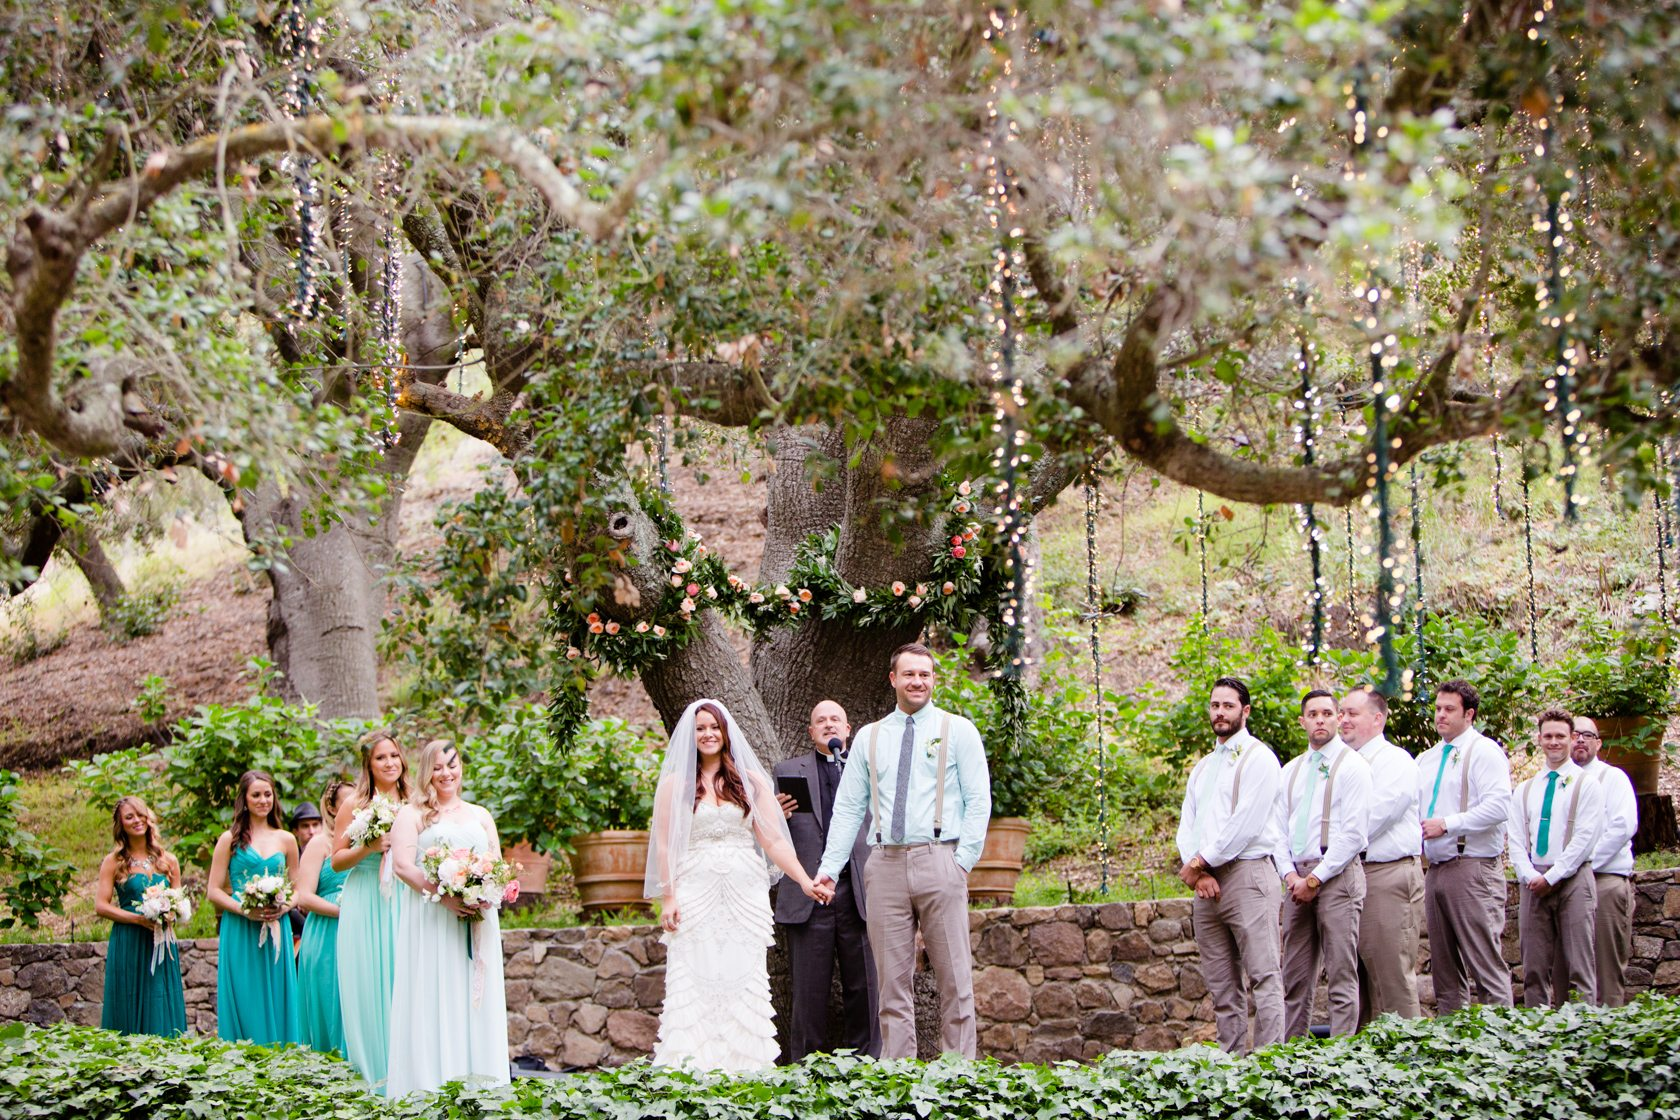 The_Printed_Palette_Wedding_at_Calamigos_Ranch_072.jpg